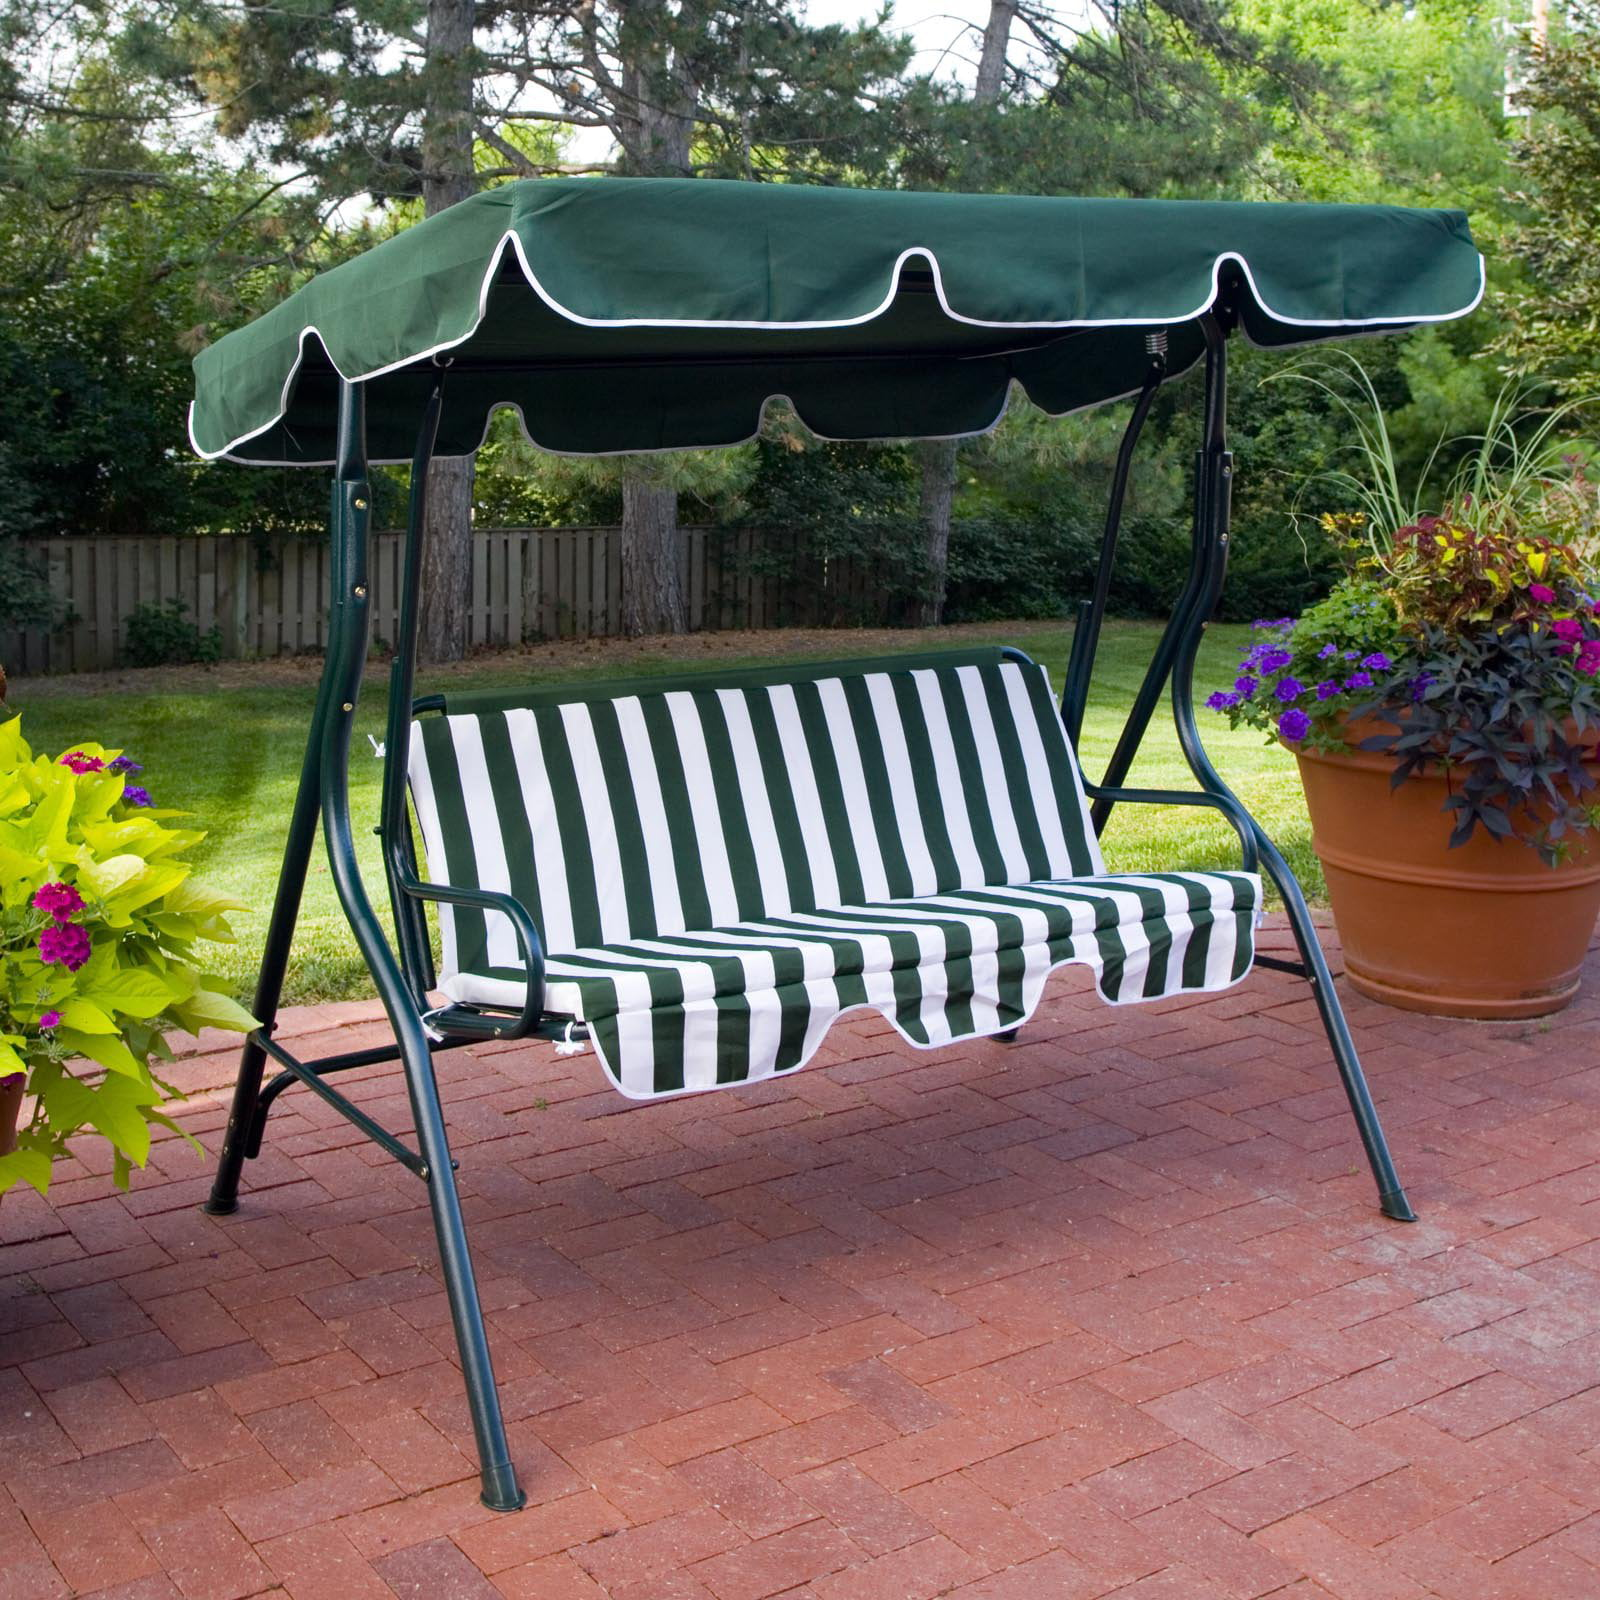 Best Choice Products Hanging Chaise Lounger Chair Arc Stand Air Porch Swing  Hammock Chair Canopy (Teal)   Walmart.com